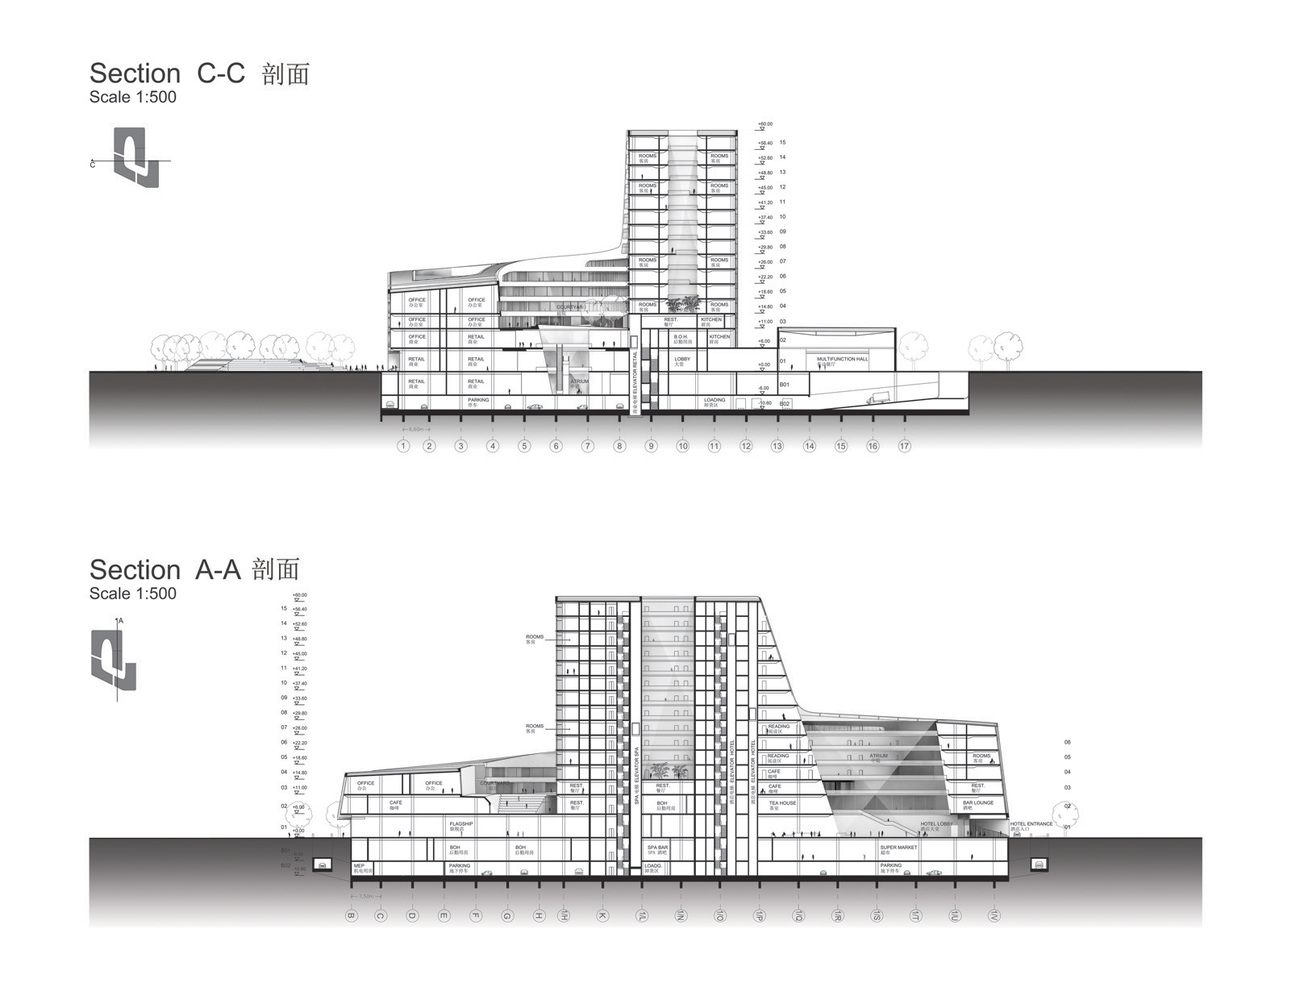 South West Hotel Compeion Proposal Henn Architects Sections